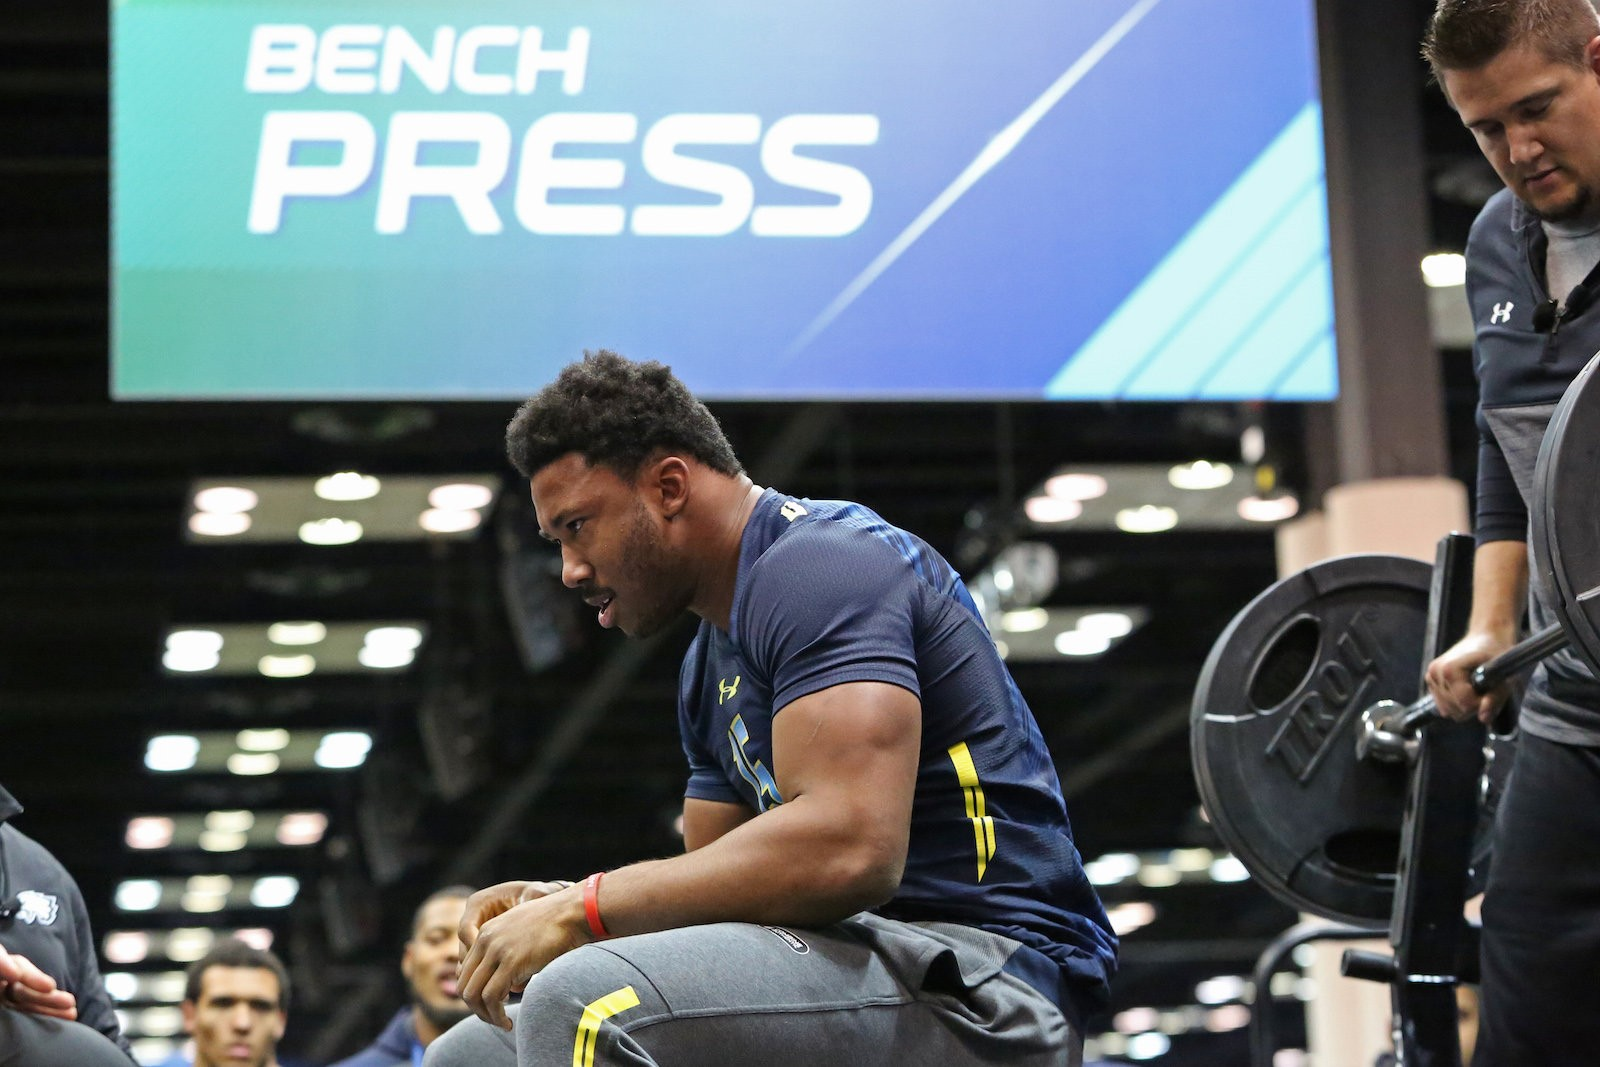 Who Were The Strongest Players At The 2017 Nfl Scouting Combine Bench Press Results Oregonlive Com